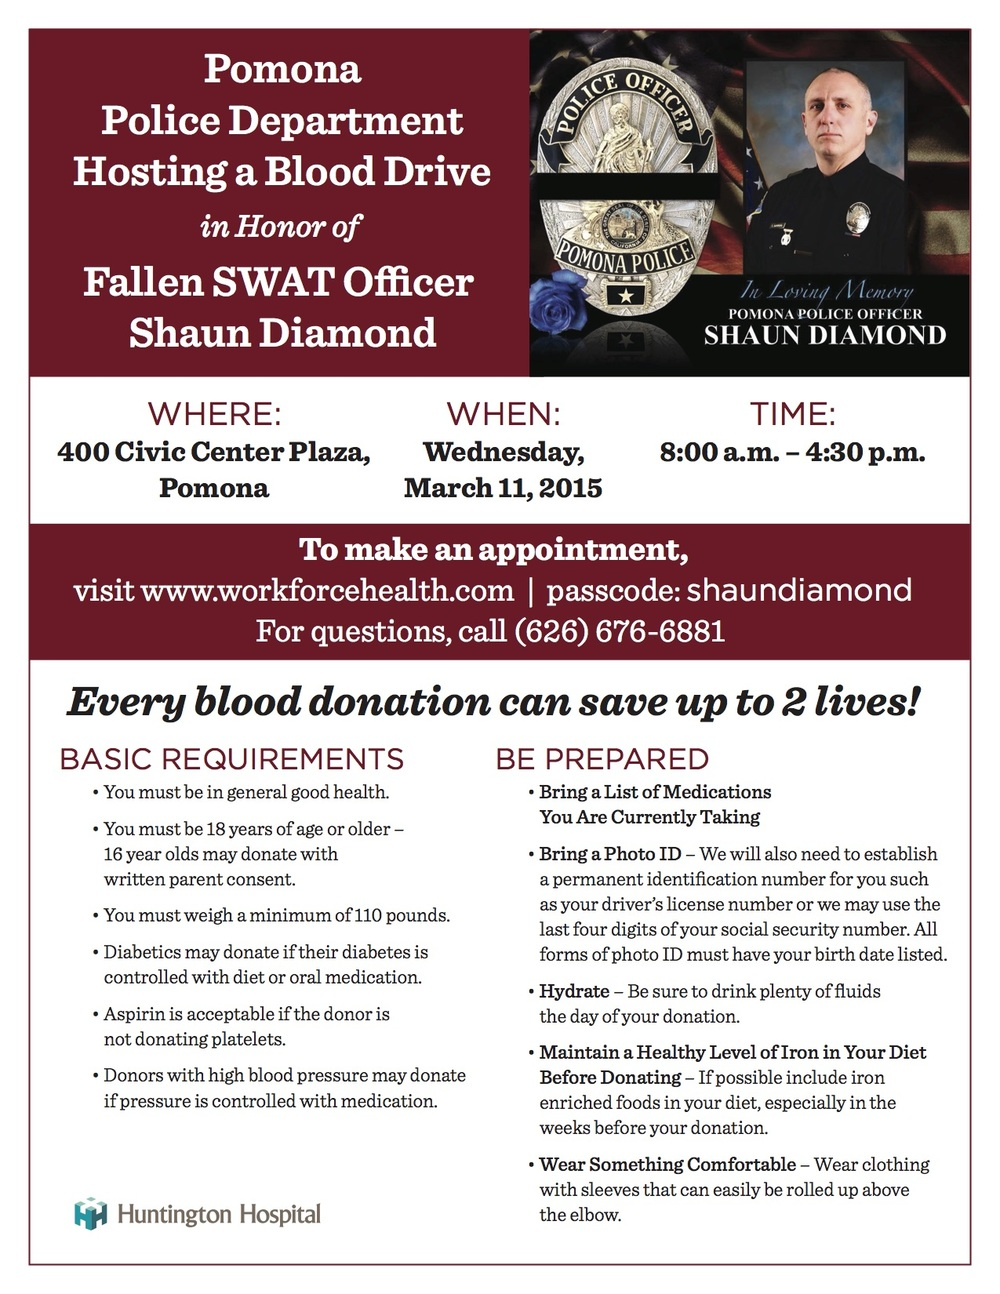 Blood Donor Flyer - Shaun Diamond Jan  2015